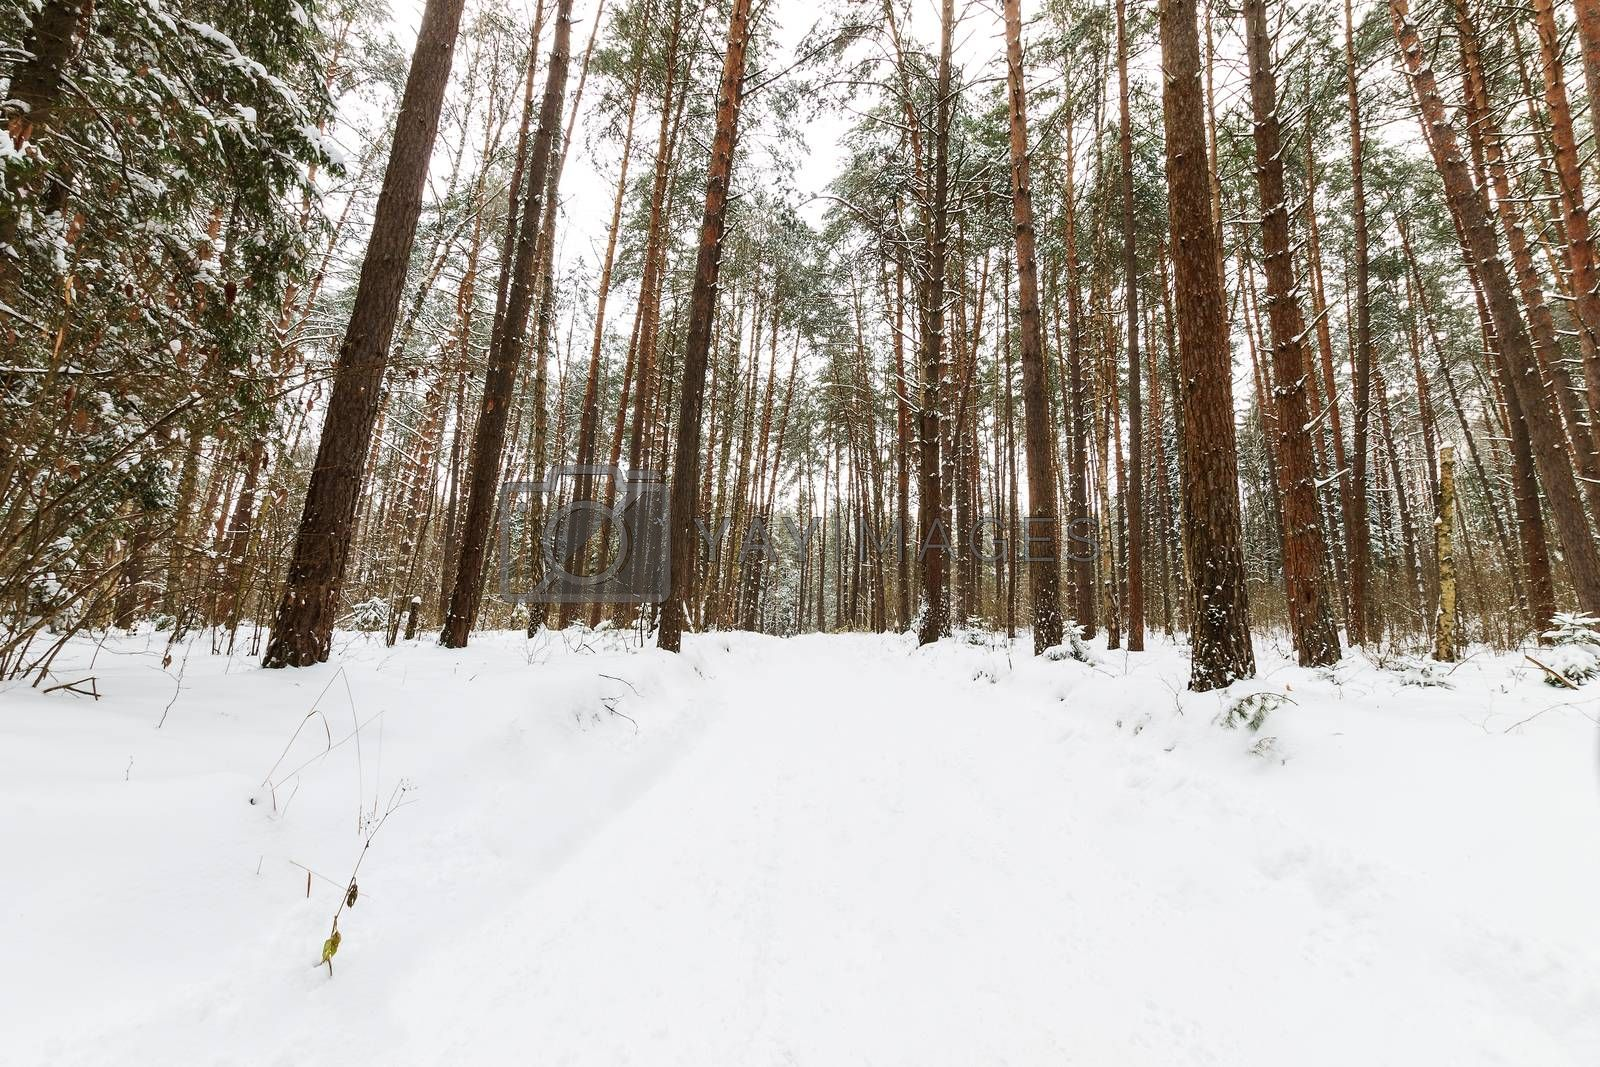 Landscape of winter pine forest covered with frost at mainly cloudly weather. First snow at autumn season.